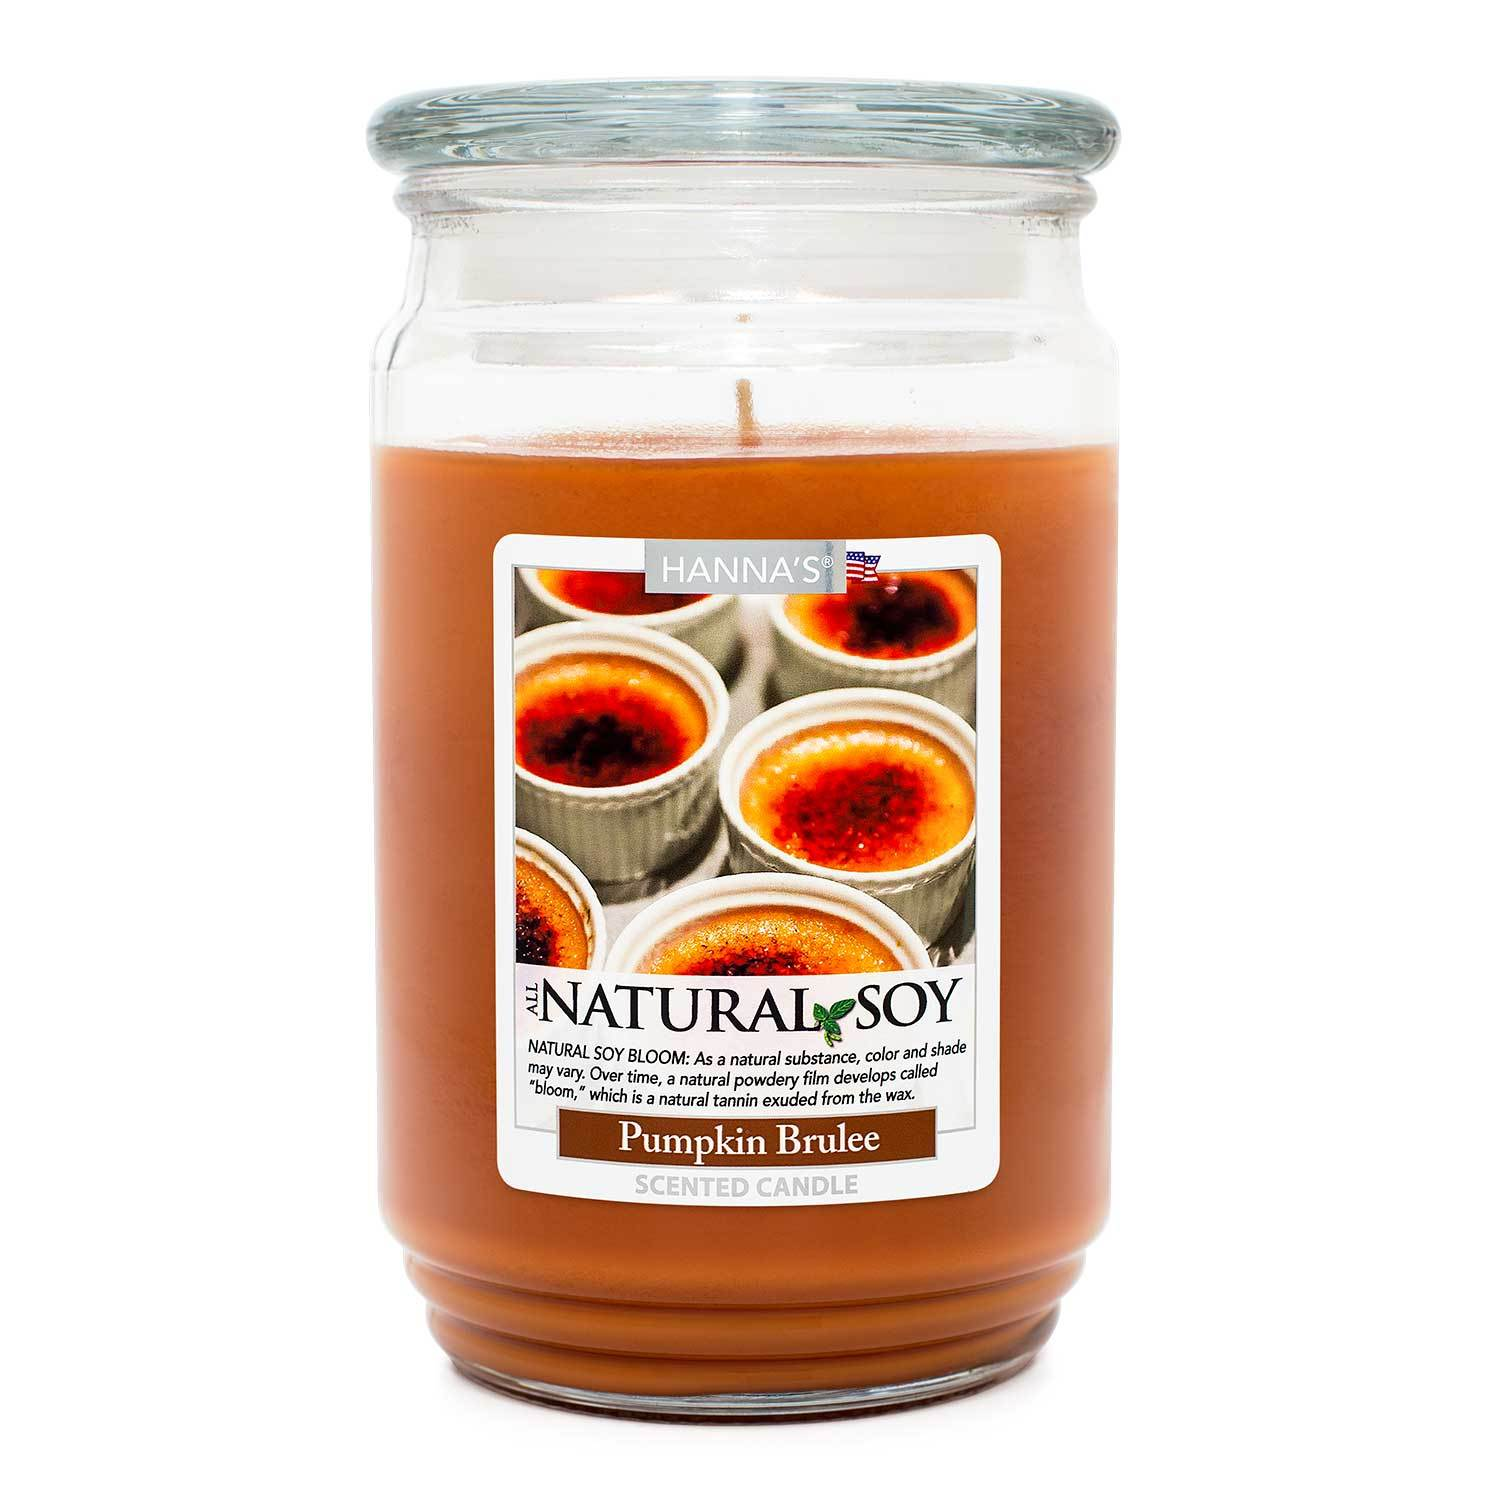 Natural Soy Pumpkin Brulee Scented Soy Candle 100% Soy Candles Candlemart.com $ 12.99